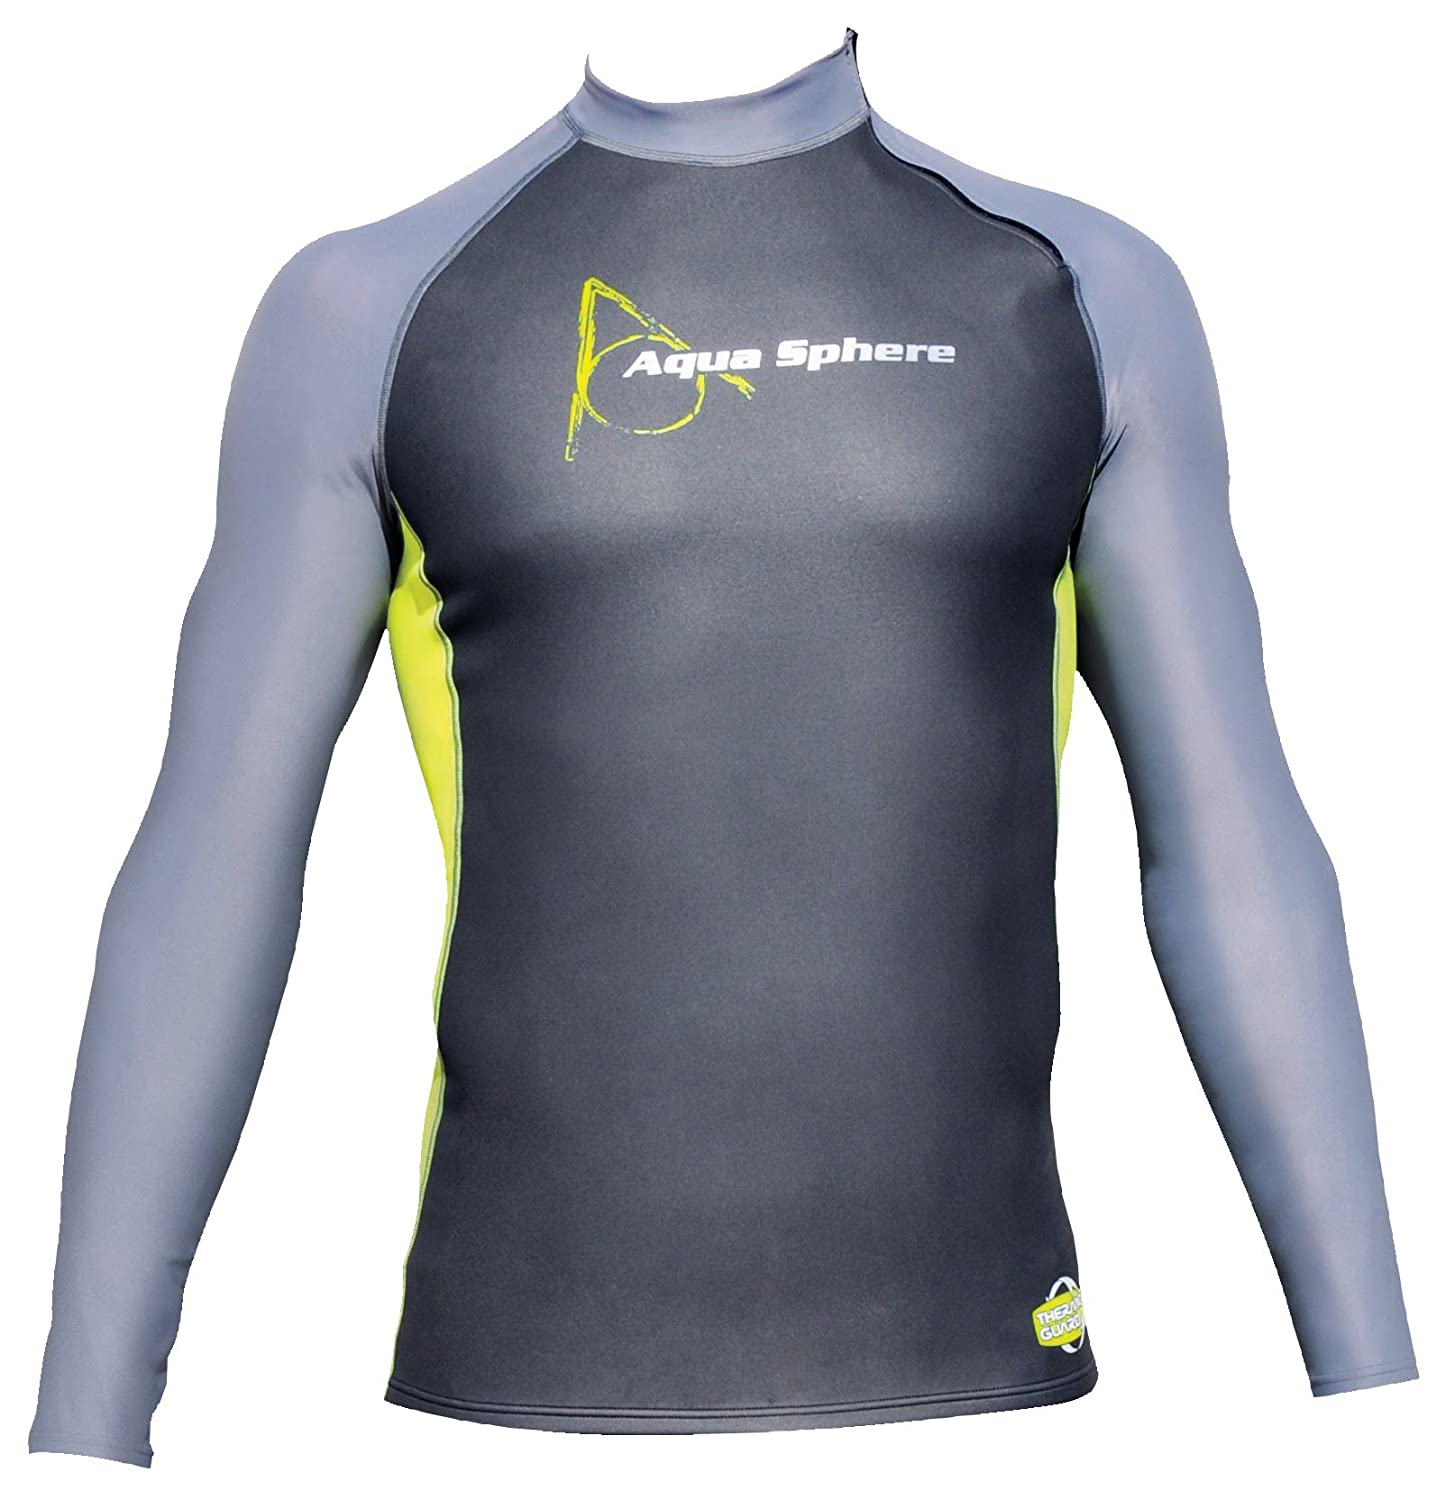 Aqua Sphere Men's Skin Long Sleeve Top-Black/Yellow, Medium